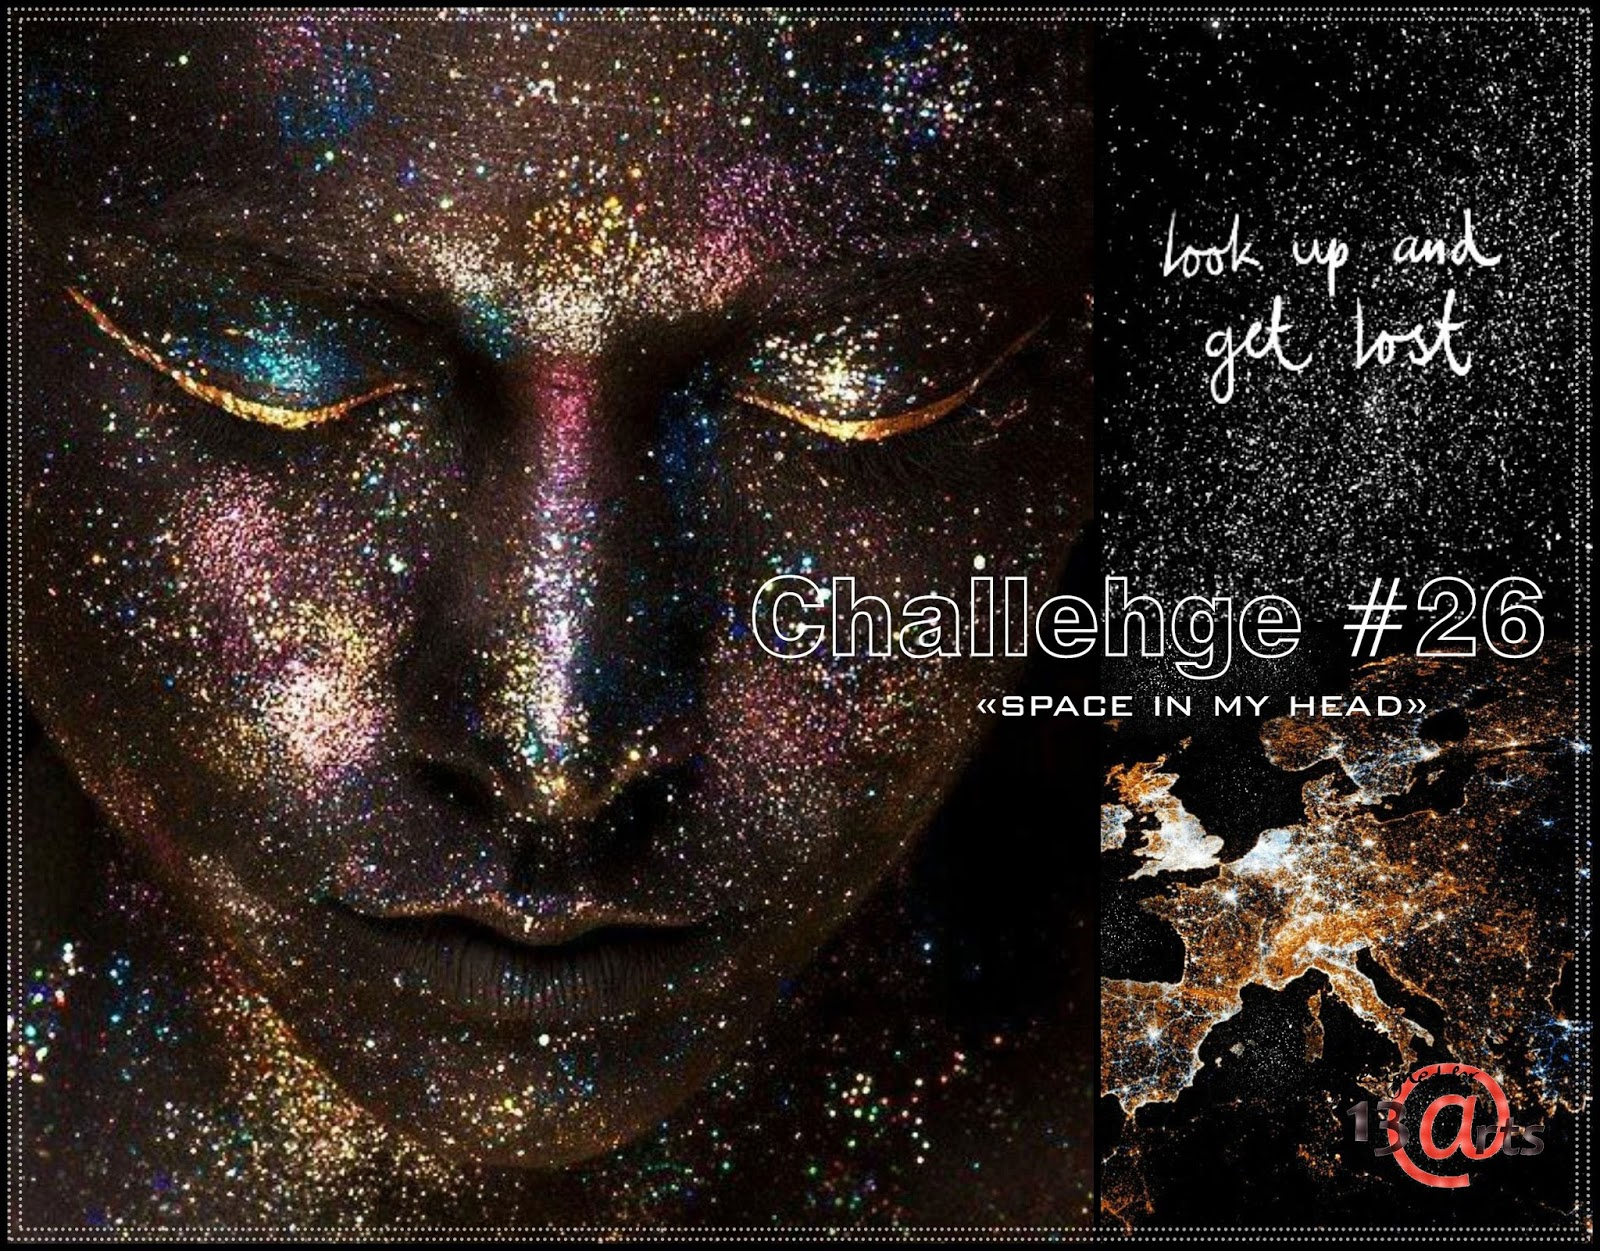 http://13artspl.blogspot.com/2015/01/january-challenge-26-space-in-my-head.html